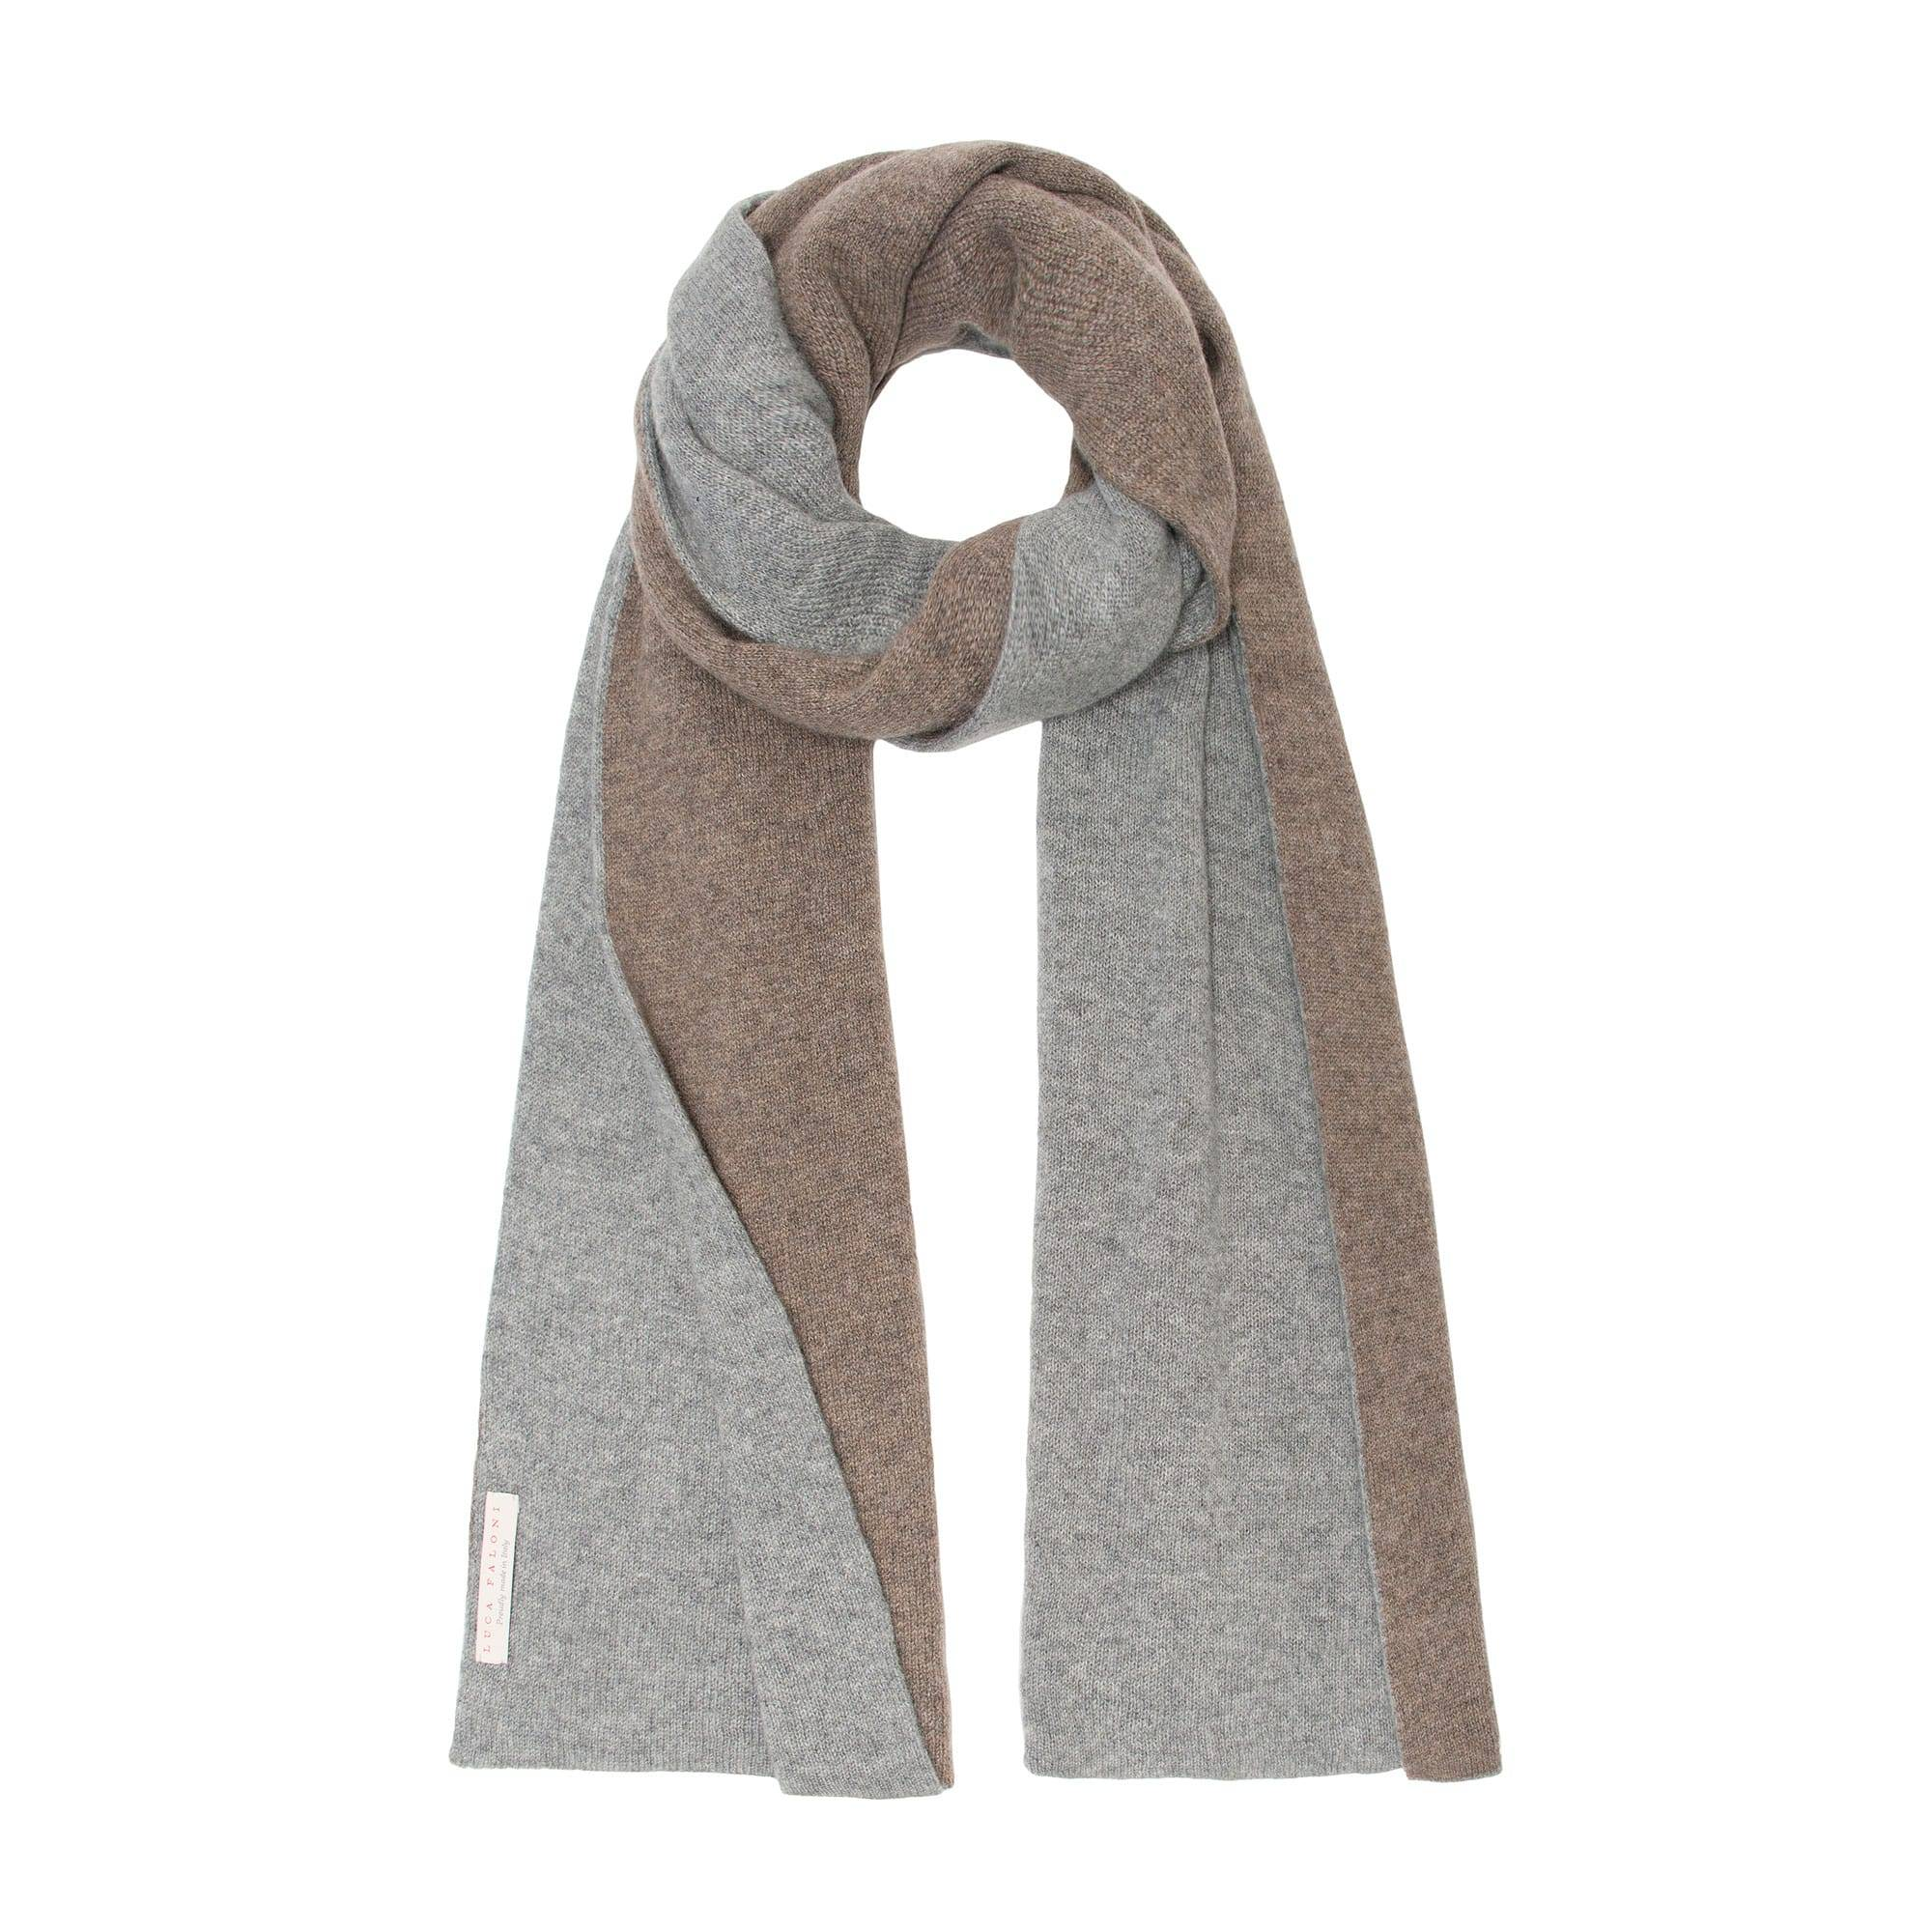 Luca Faloni Cashmere Double-Faced Scarf Made in Italy